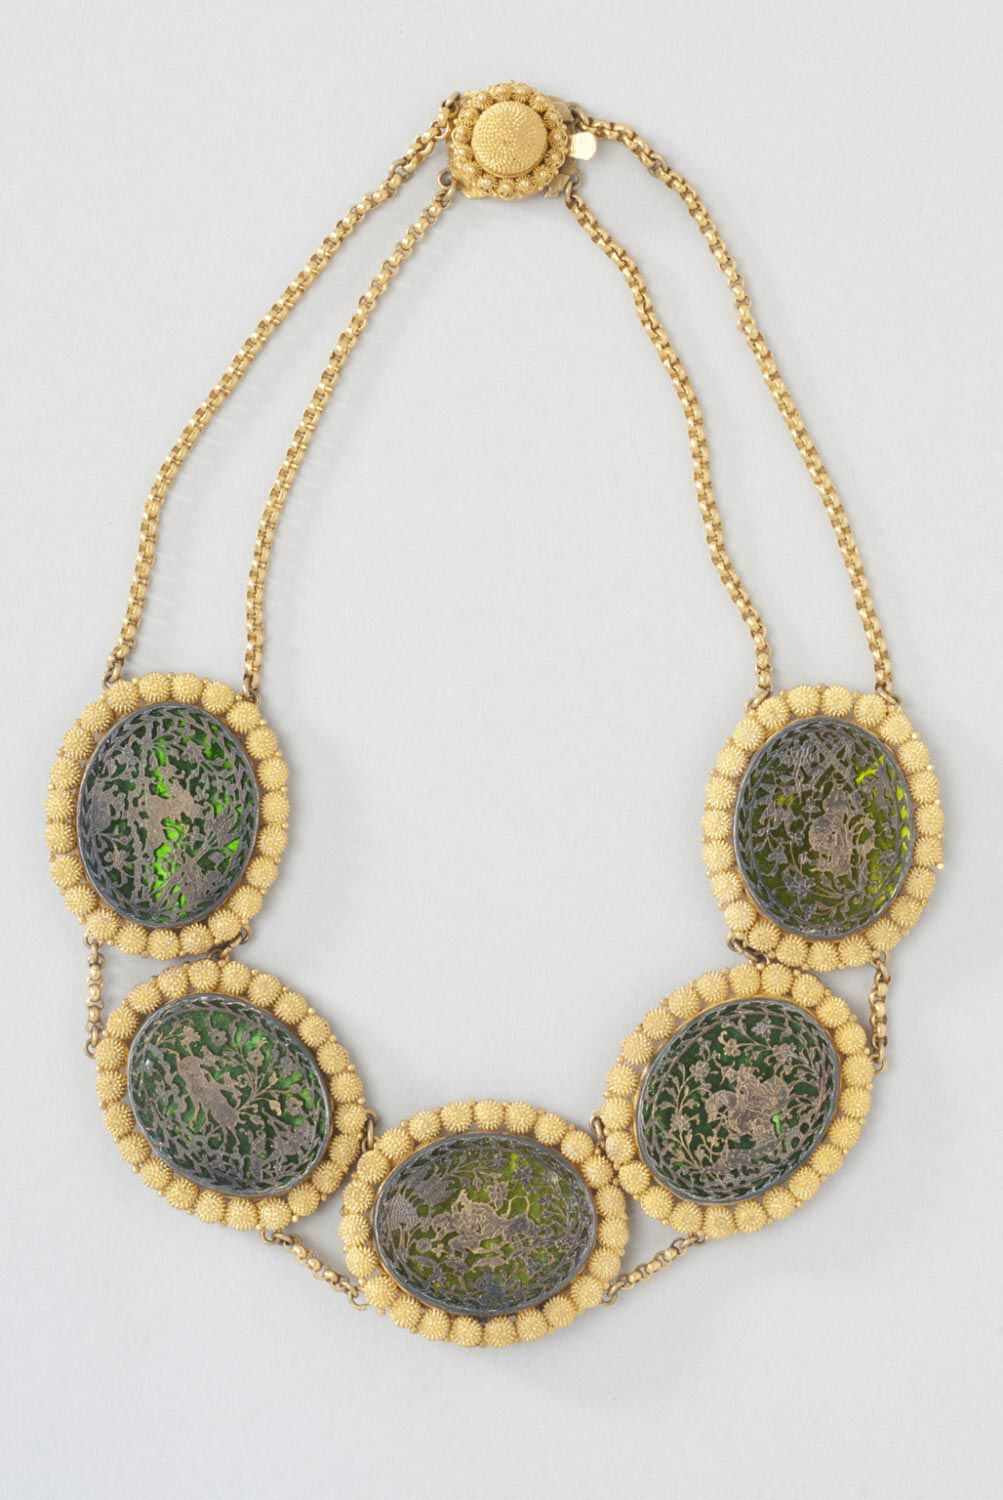 Thewa‑Work Necklace Work necklaces, Jewelry, South asian art